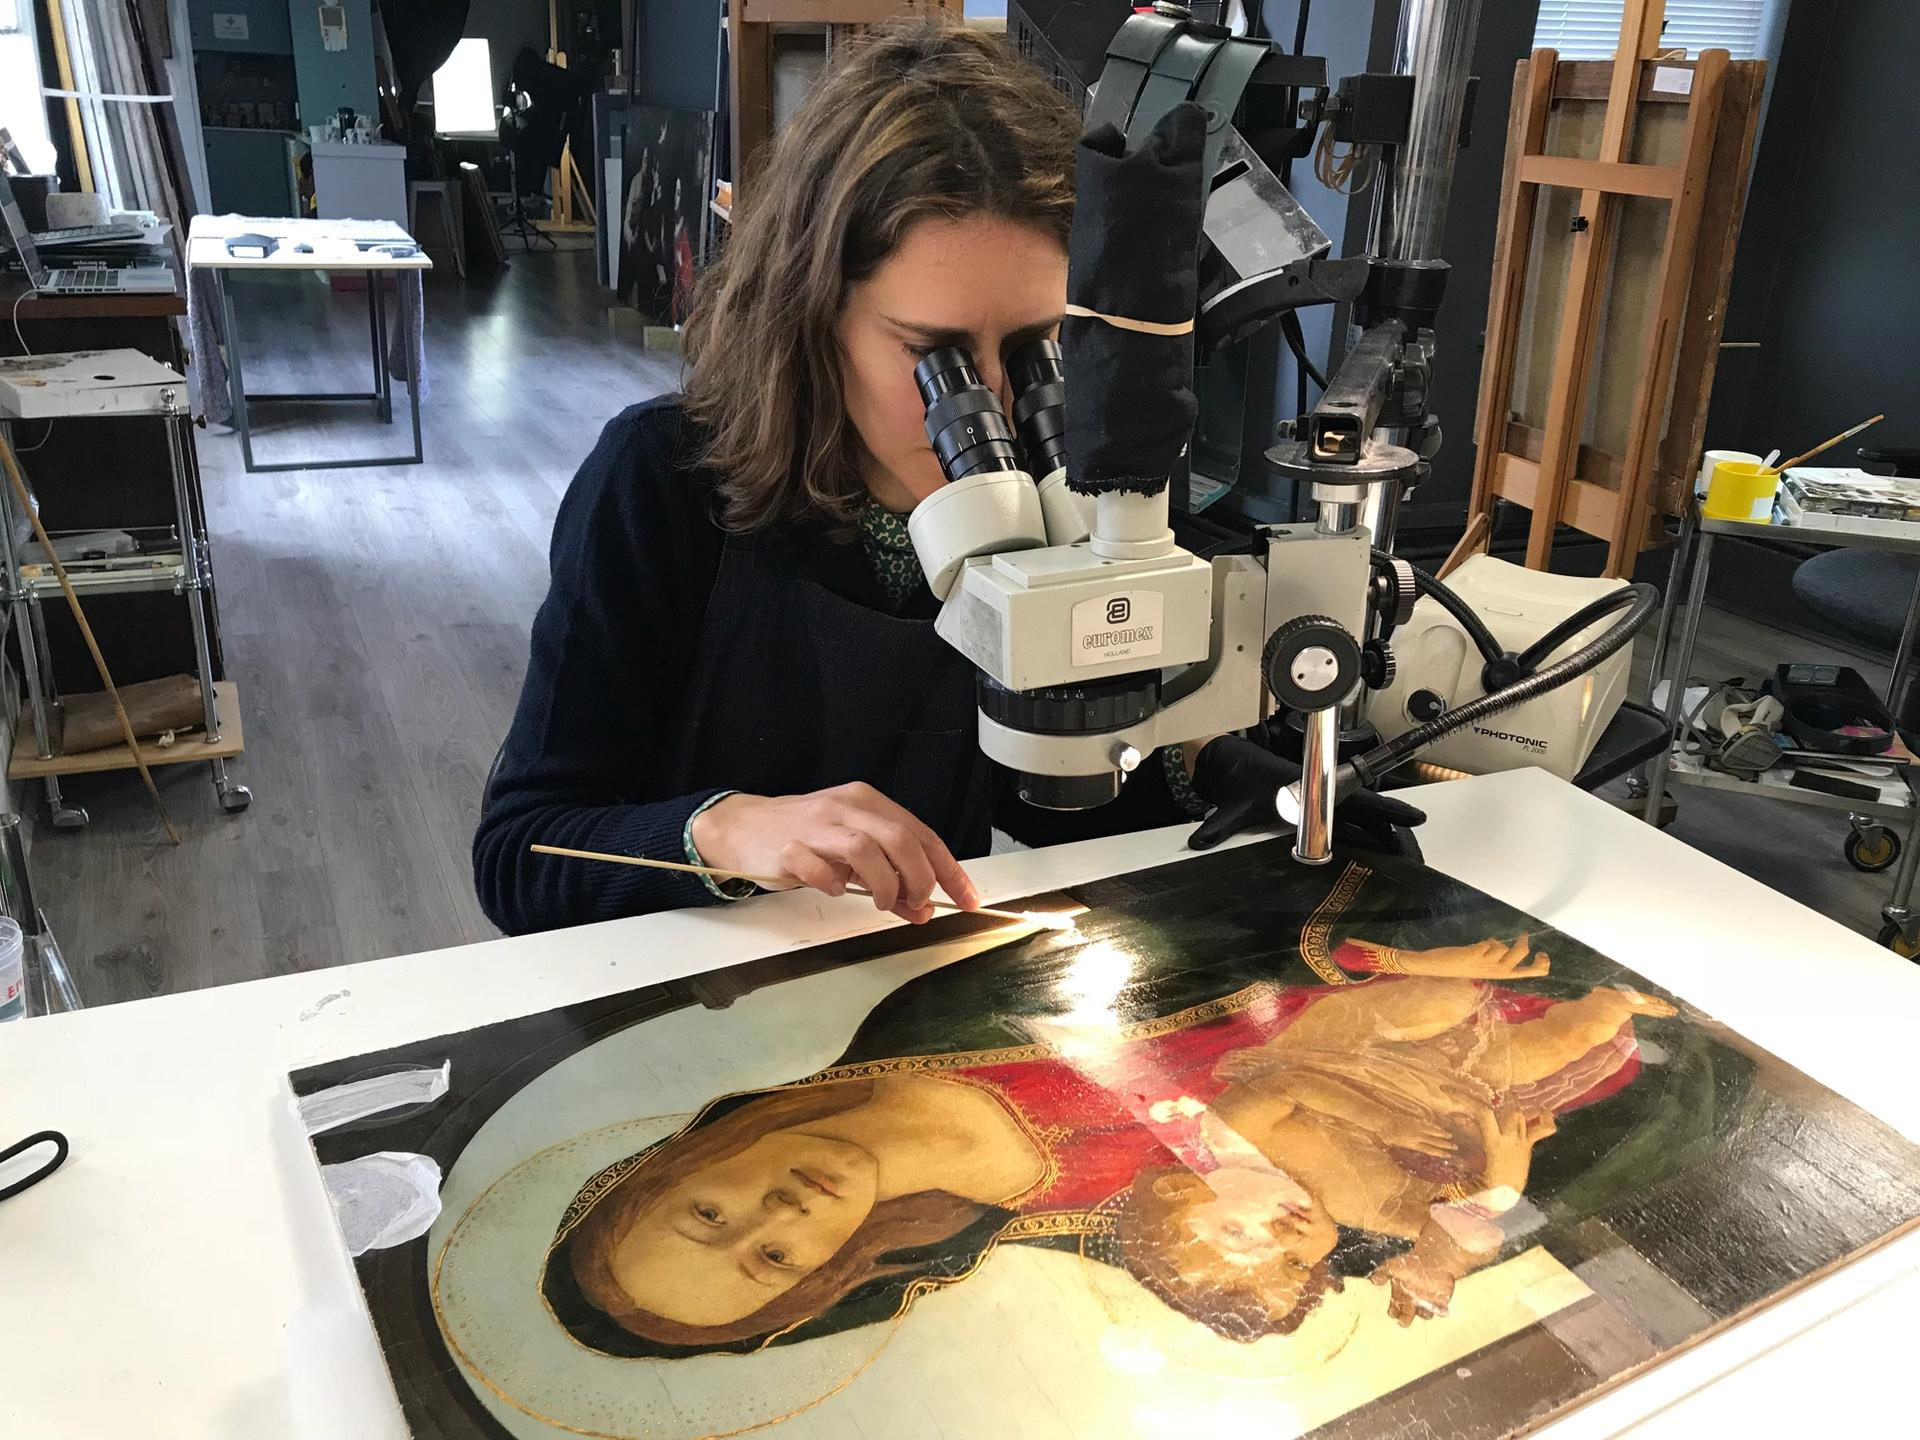 The Madonna and Child under restoration Courtesy of National Museum of Cardiff